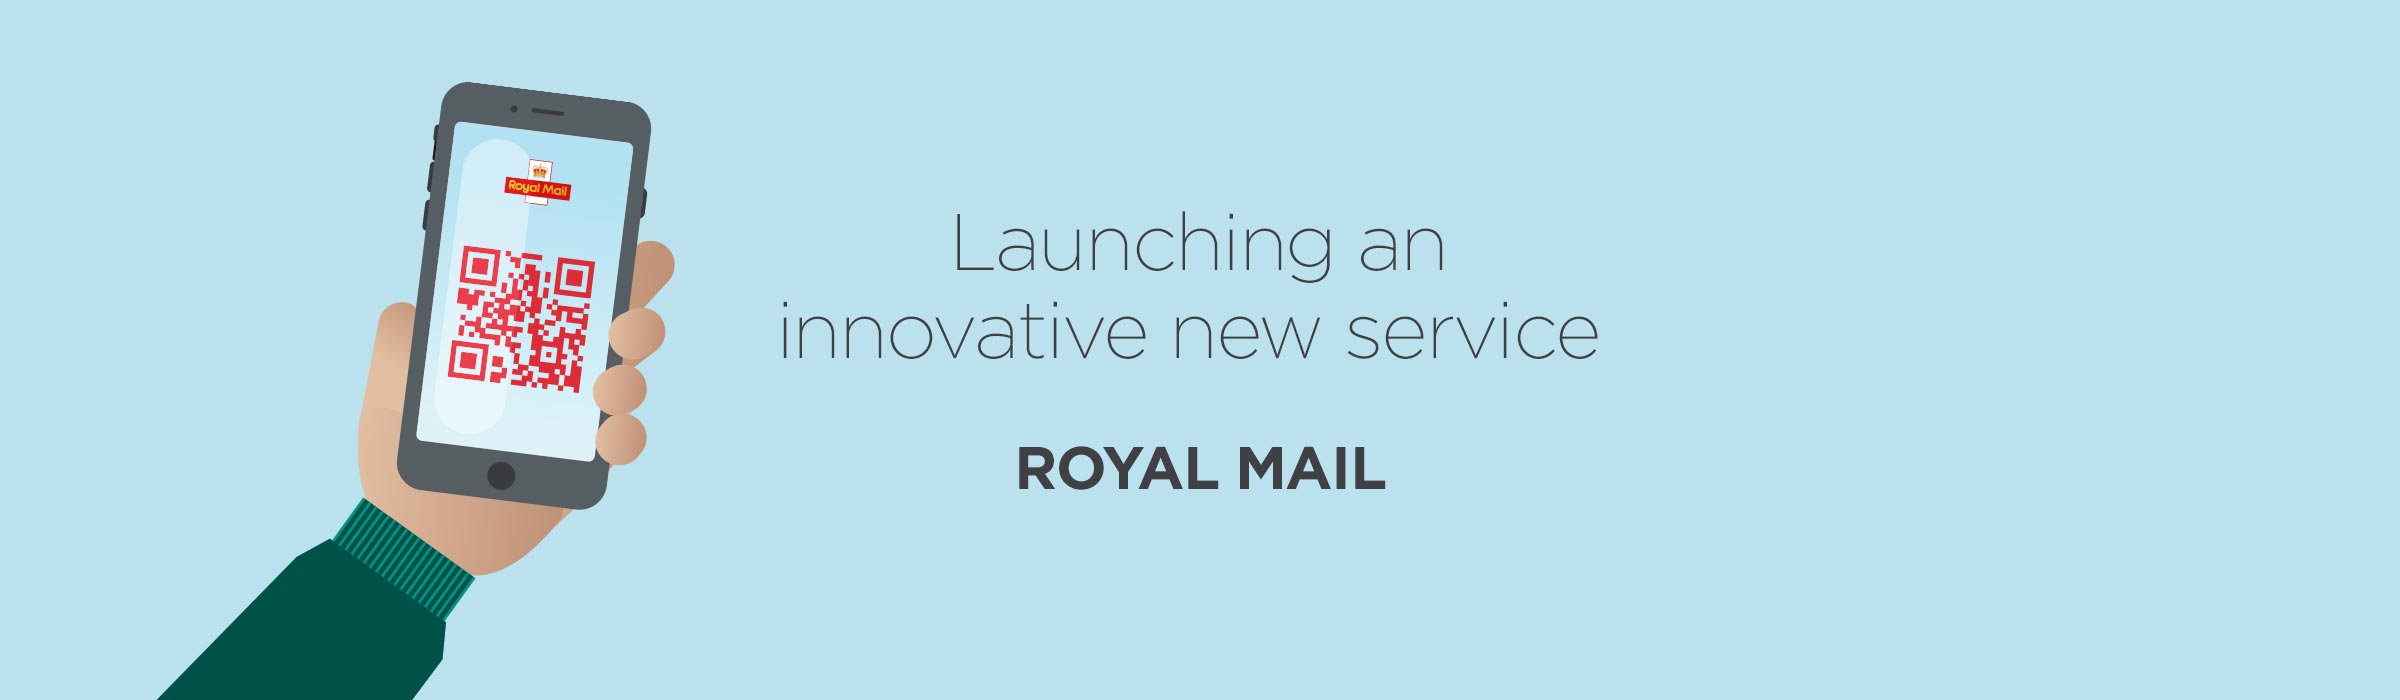 Royal Mail Labels to Go – Launching an innovative new service